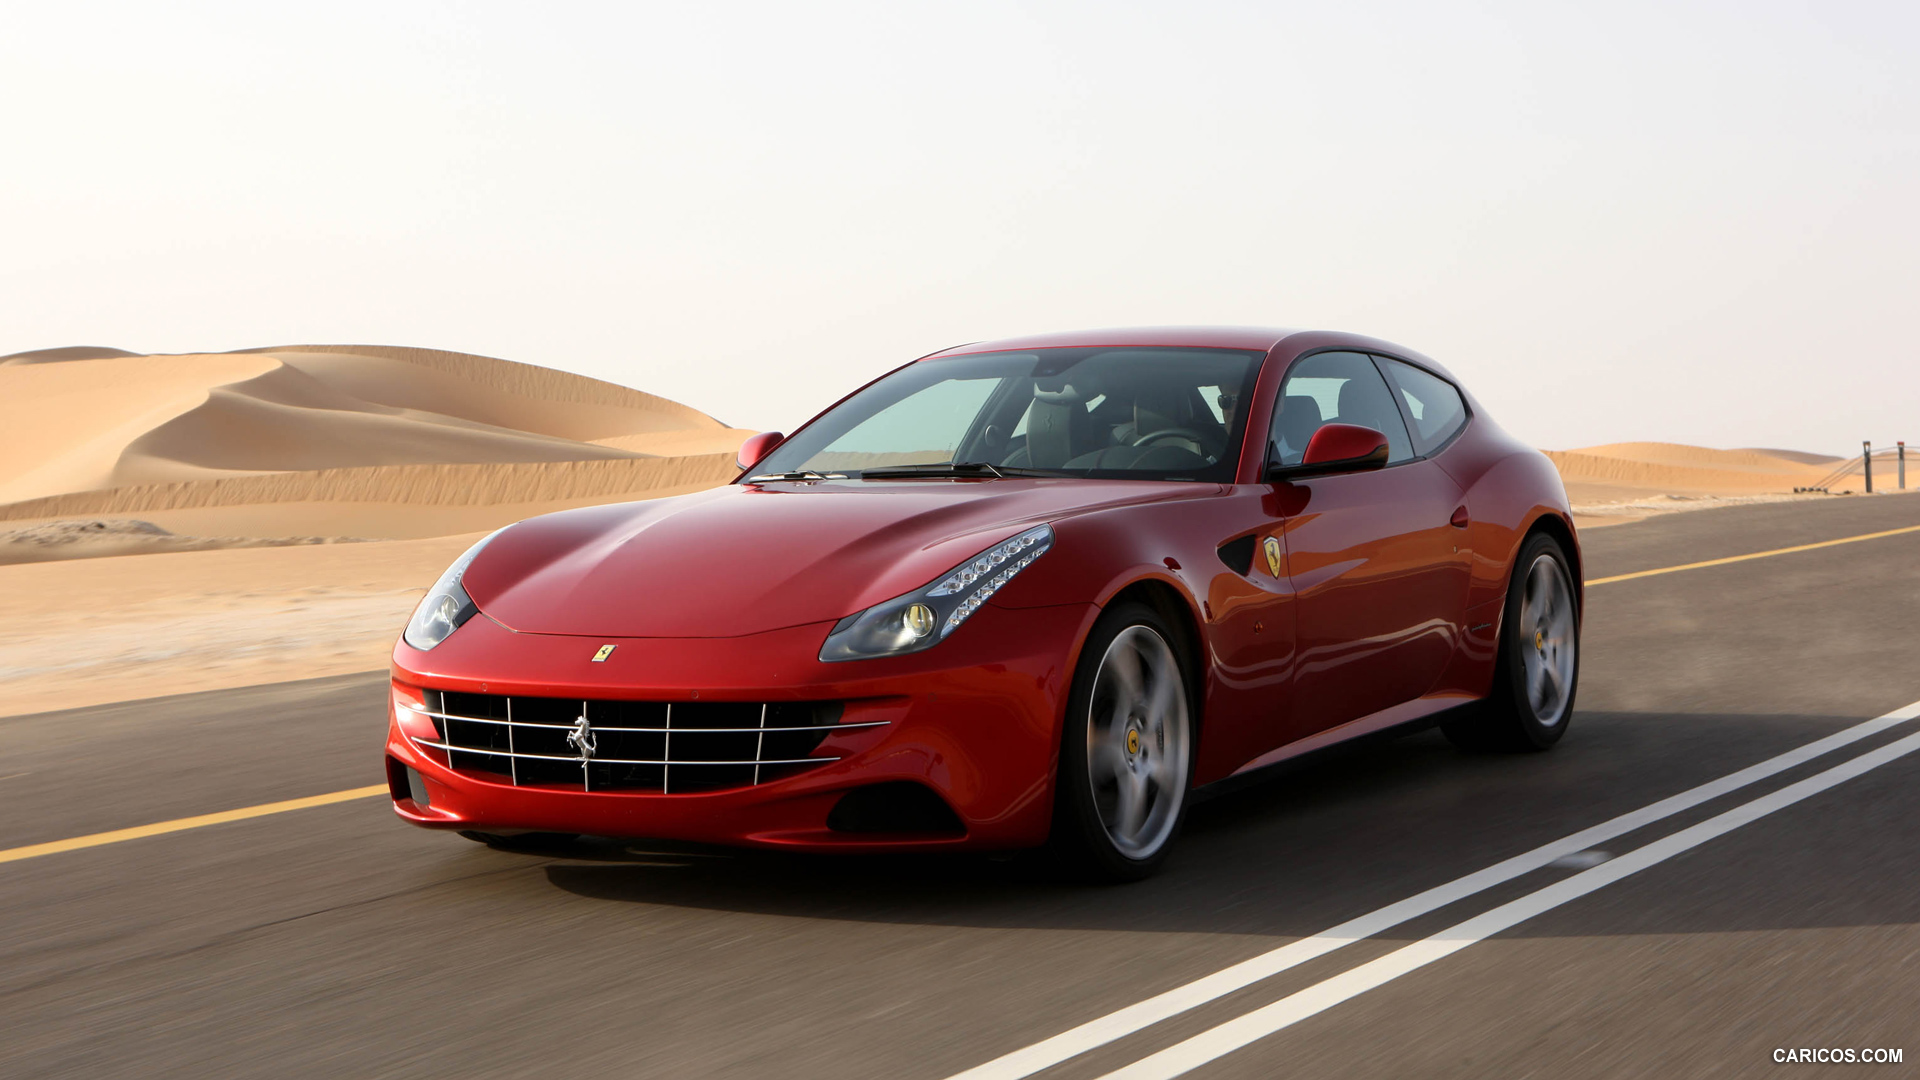 1920x1080 - Ferrari FF Wallpapers 32